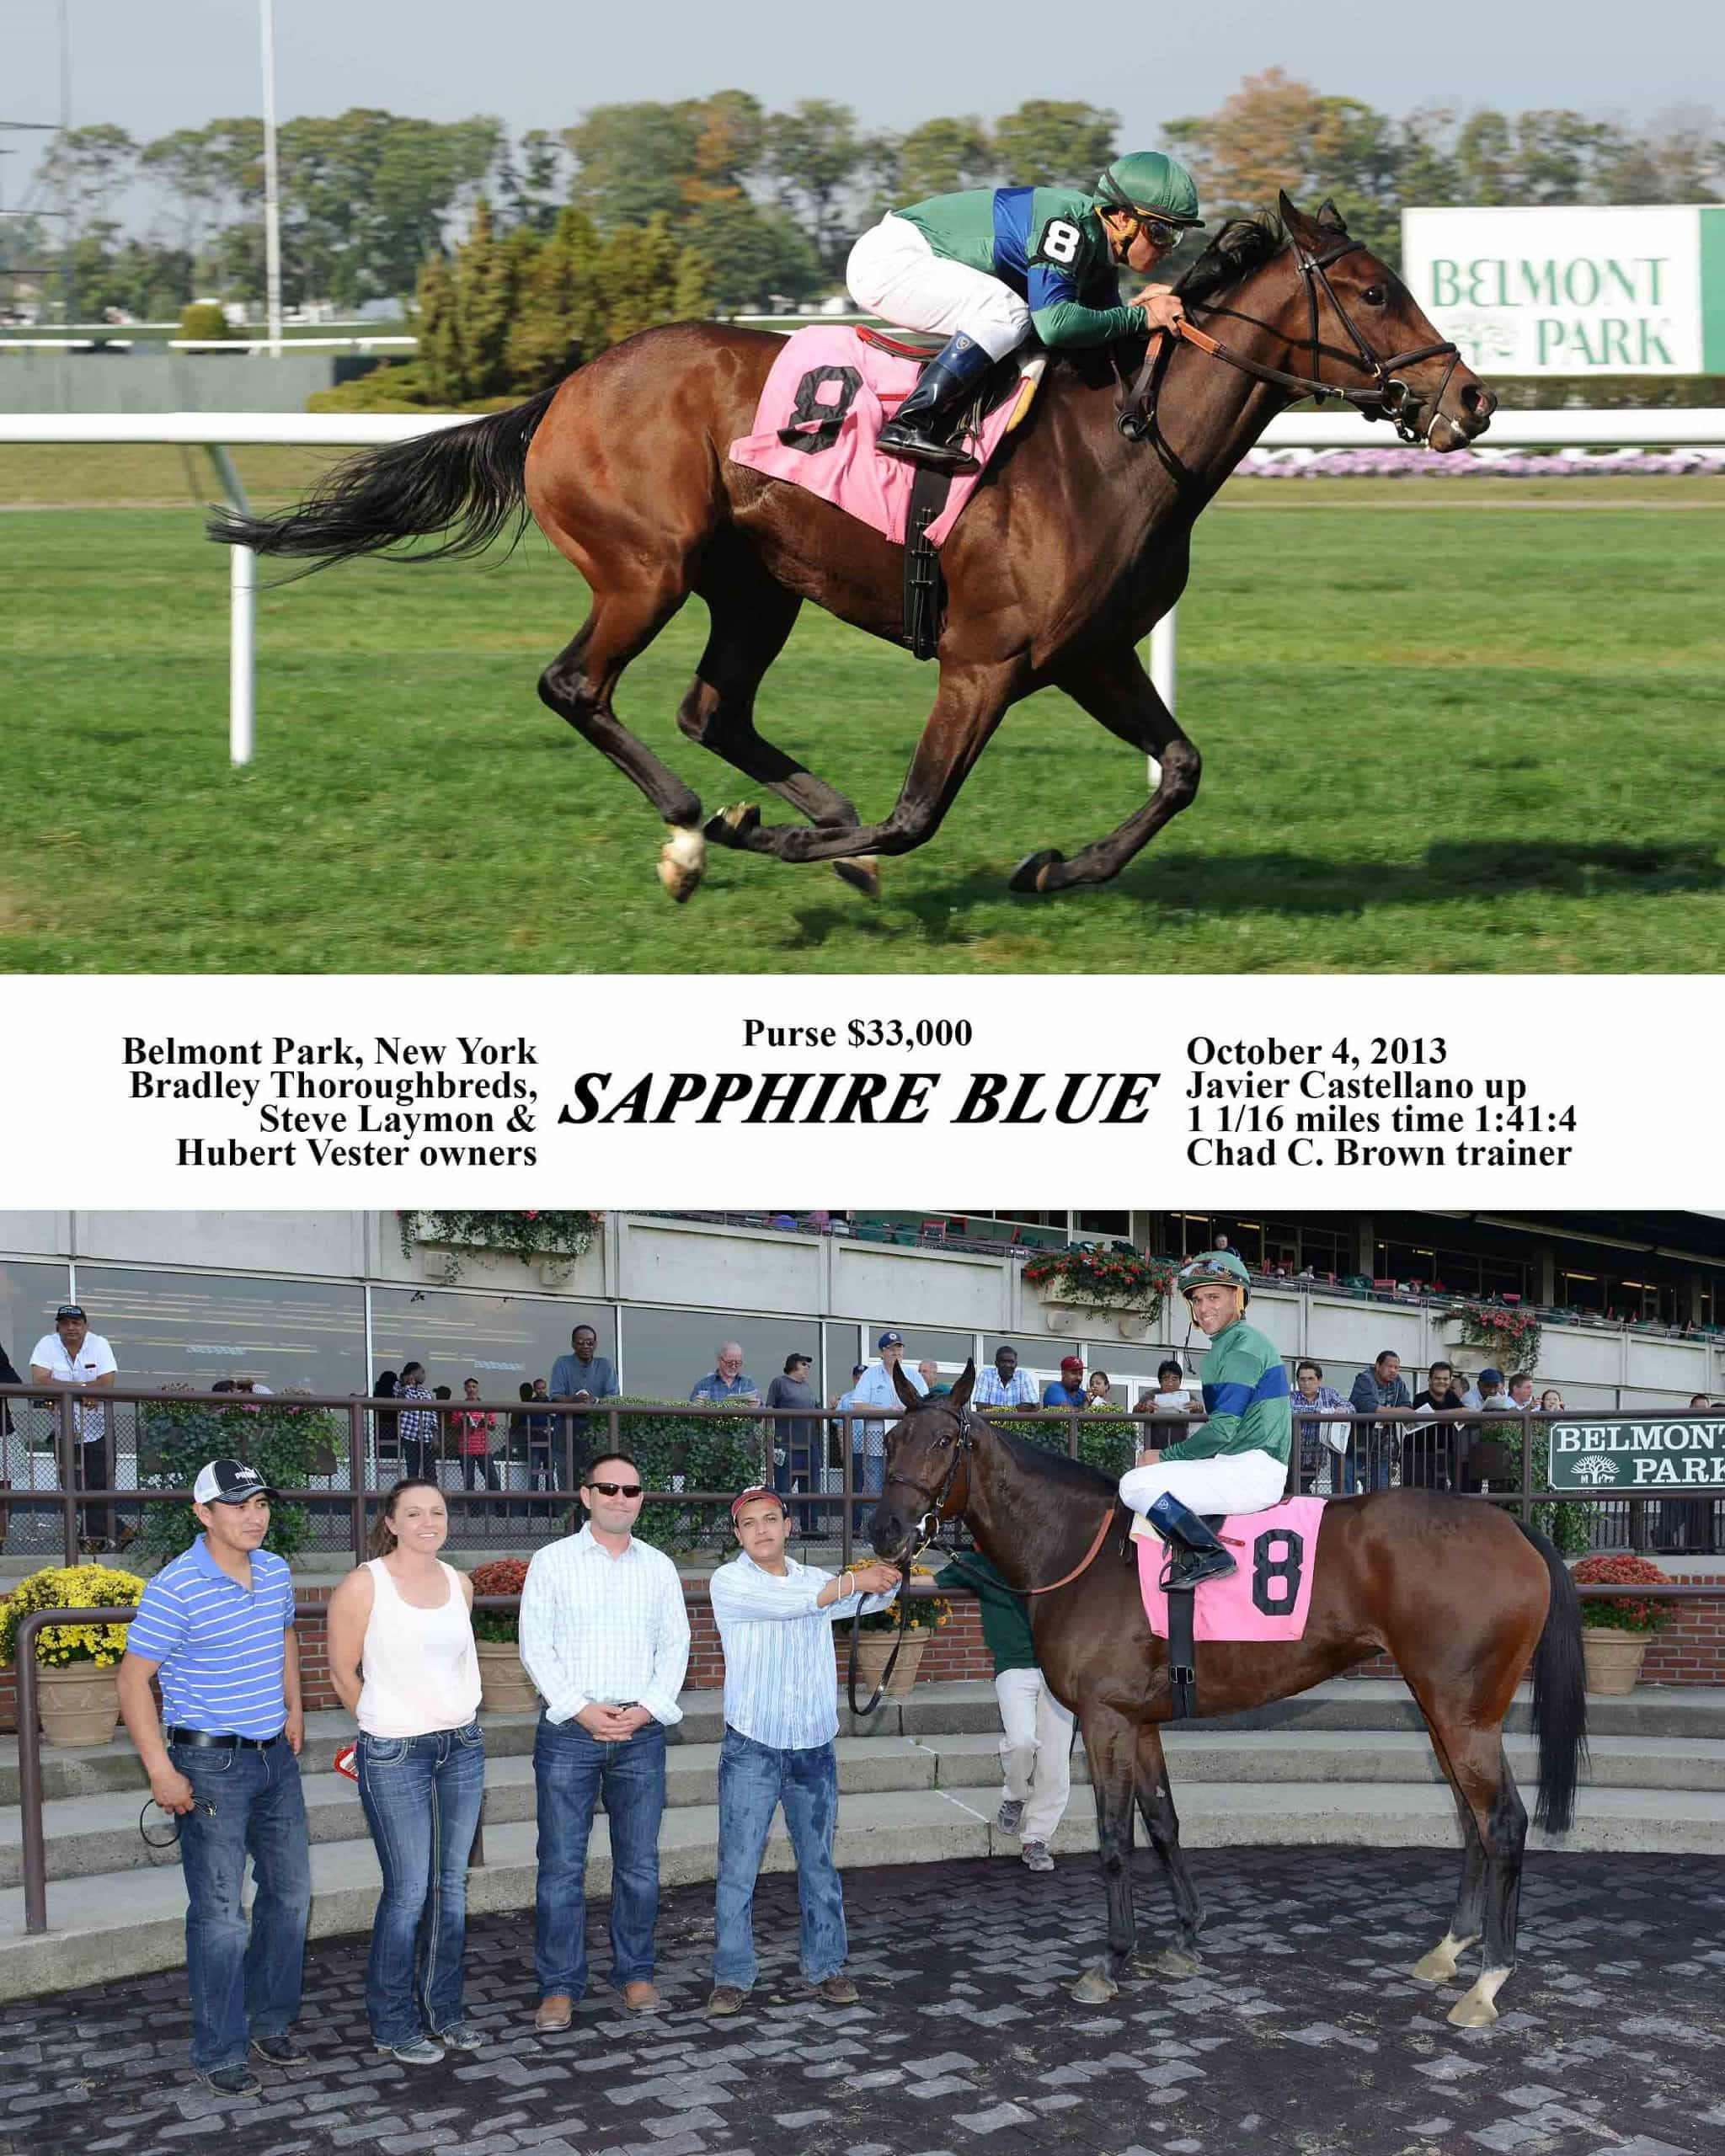 Sapphire Blue's win photo from October 4th at Belmont.